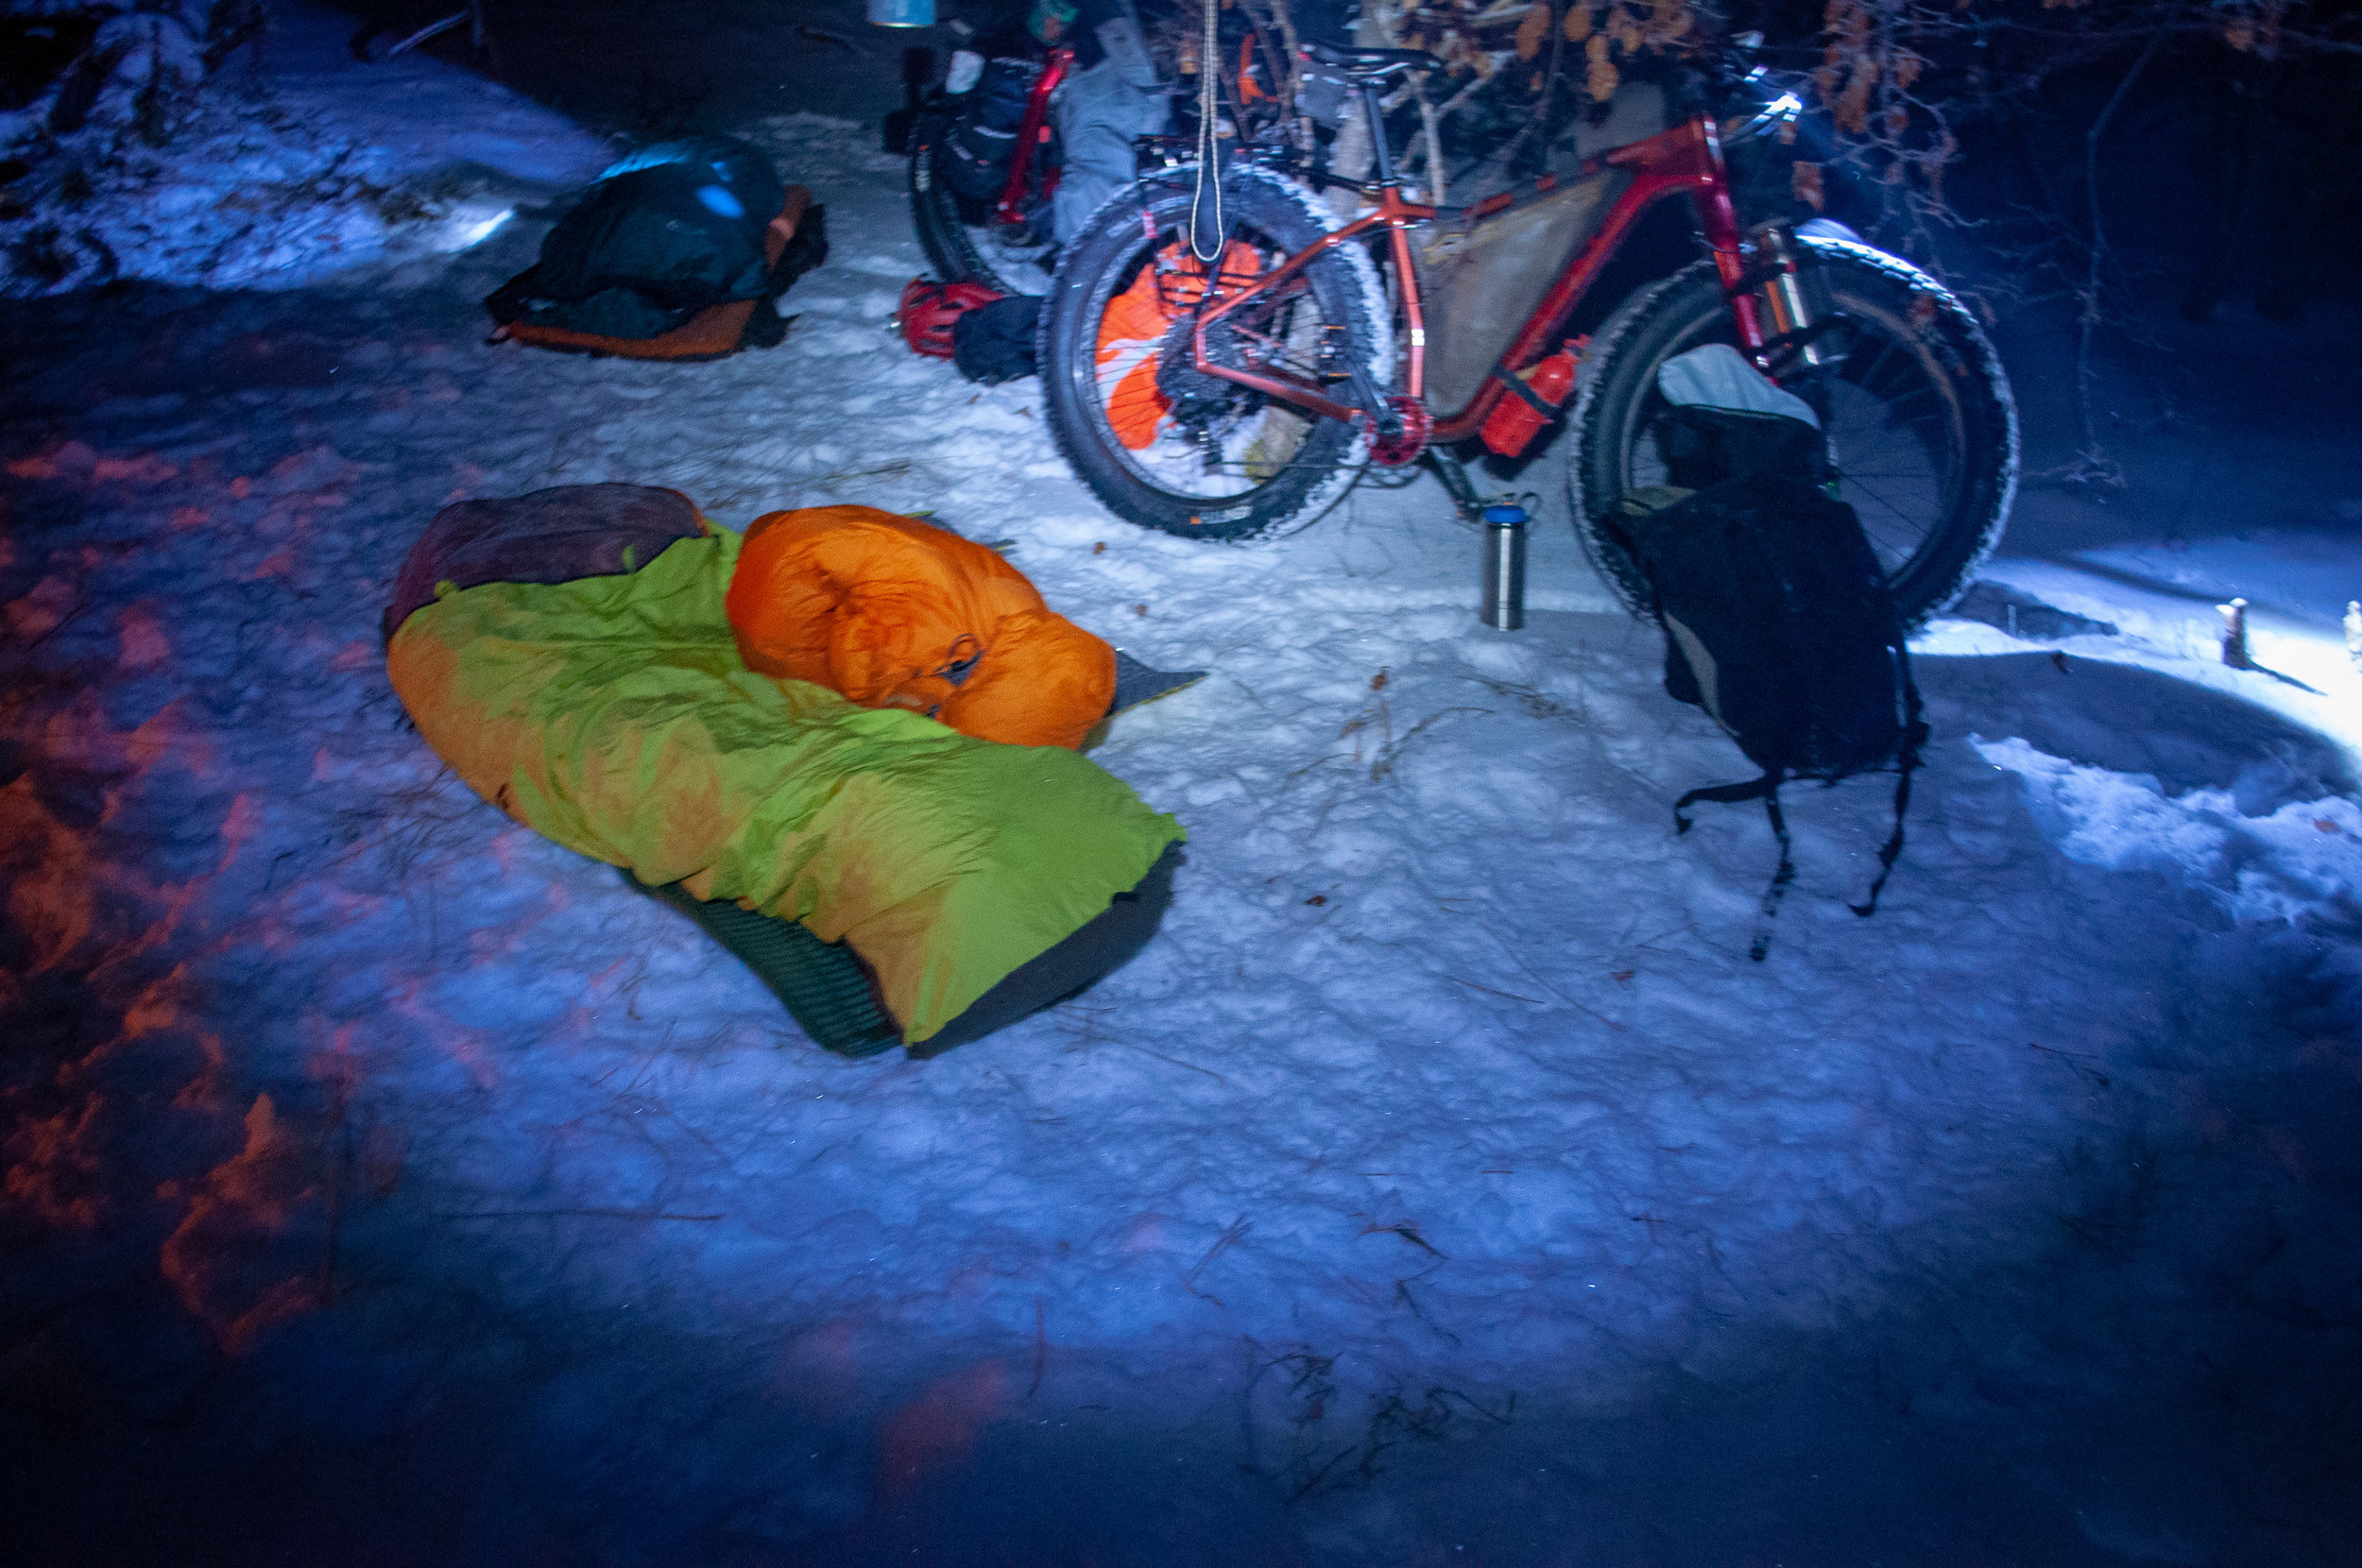 Sleeping bags set up in the snow in front of fat bikes at night